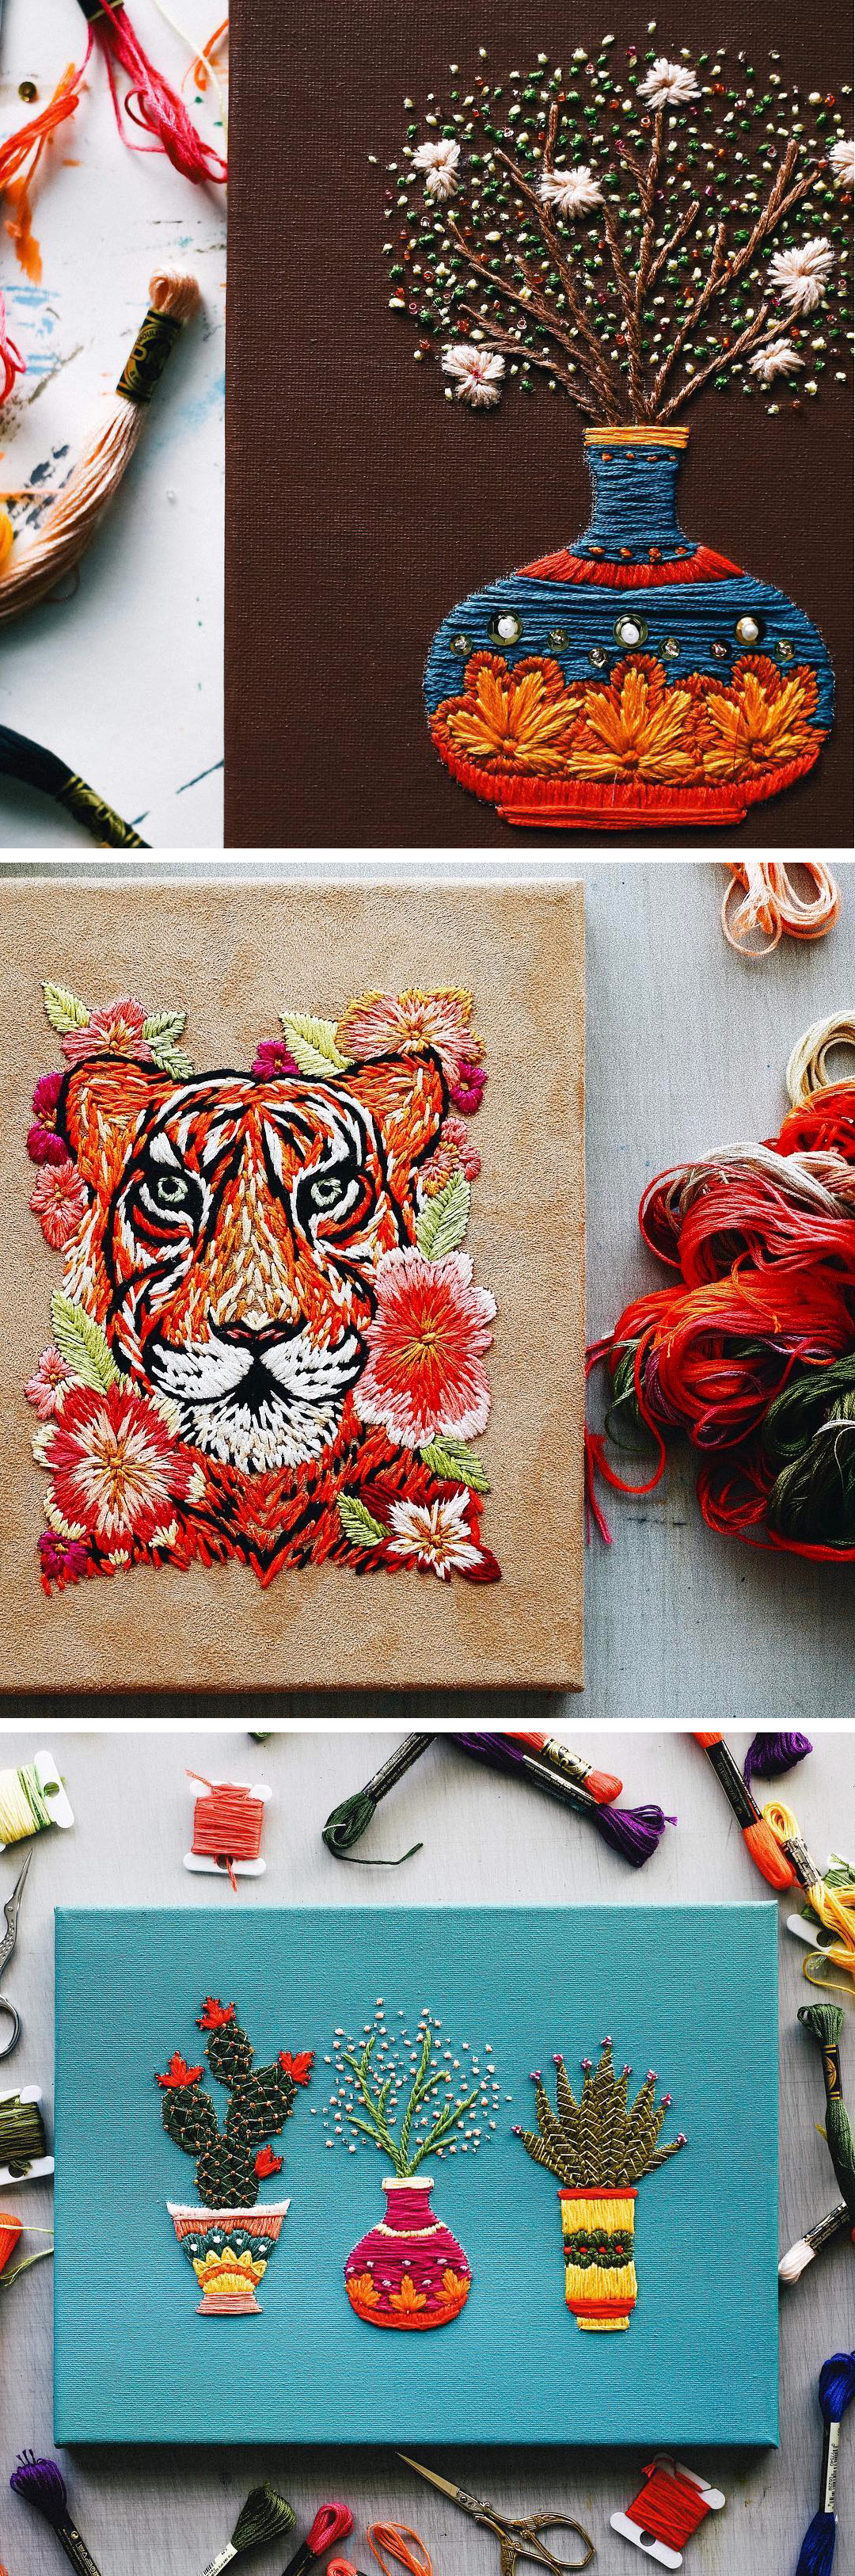 Modern Embroidery by TrueFort